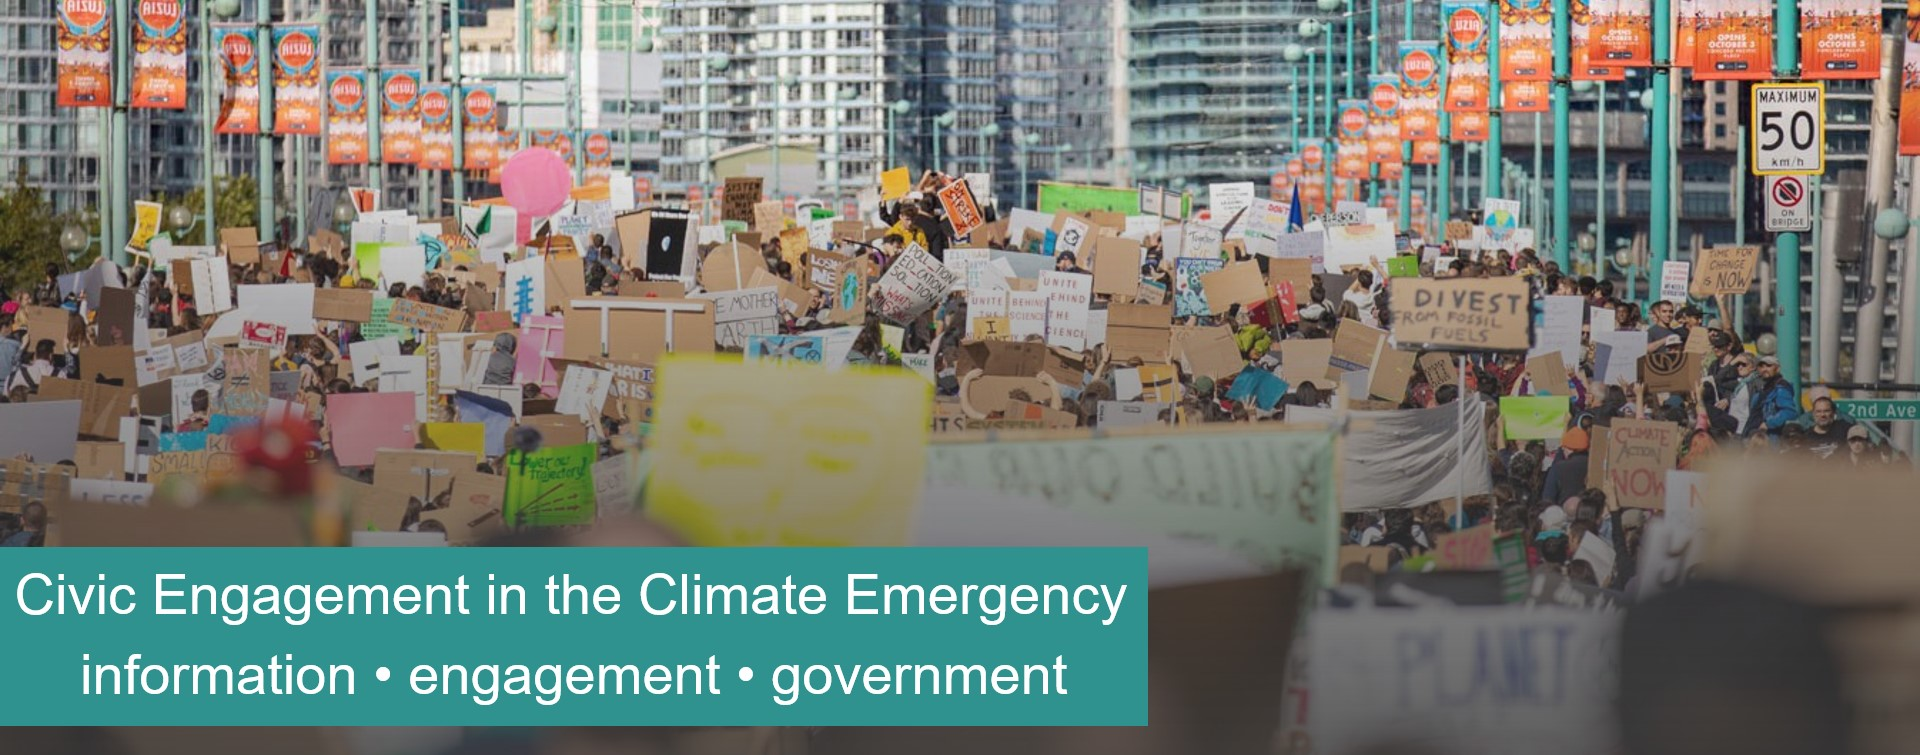 Sept 28 2019 protestors marching across Cambie Bridge in Vancouver with the text: Civic Engagement in the Climate Emergency. Information, engagement, government.